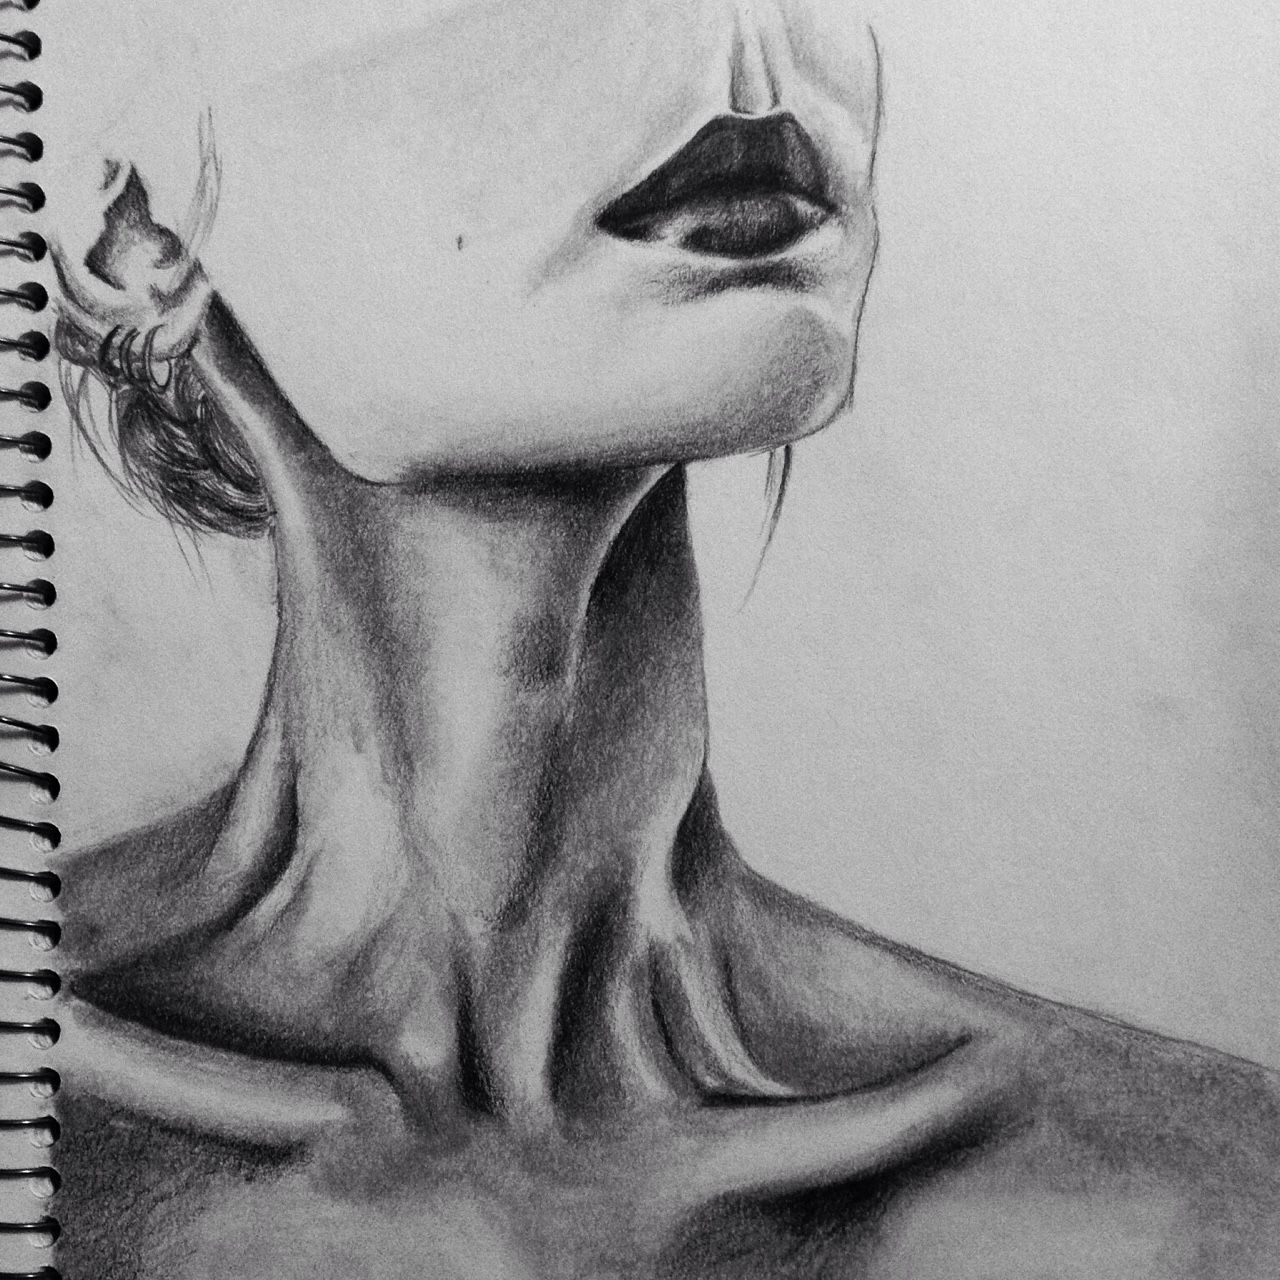 Anorexic drawing tumblr